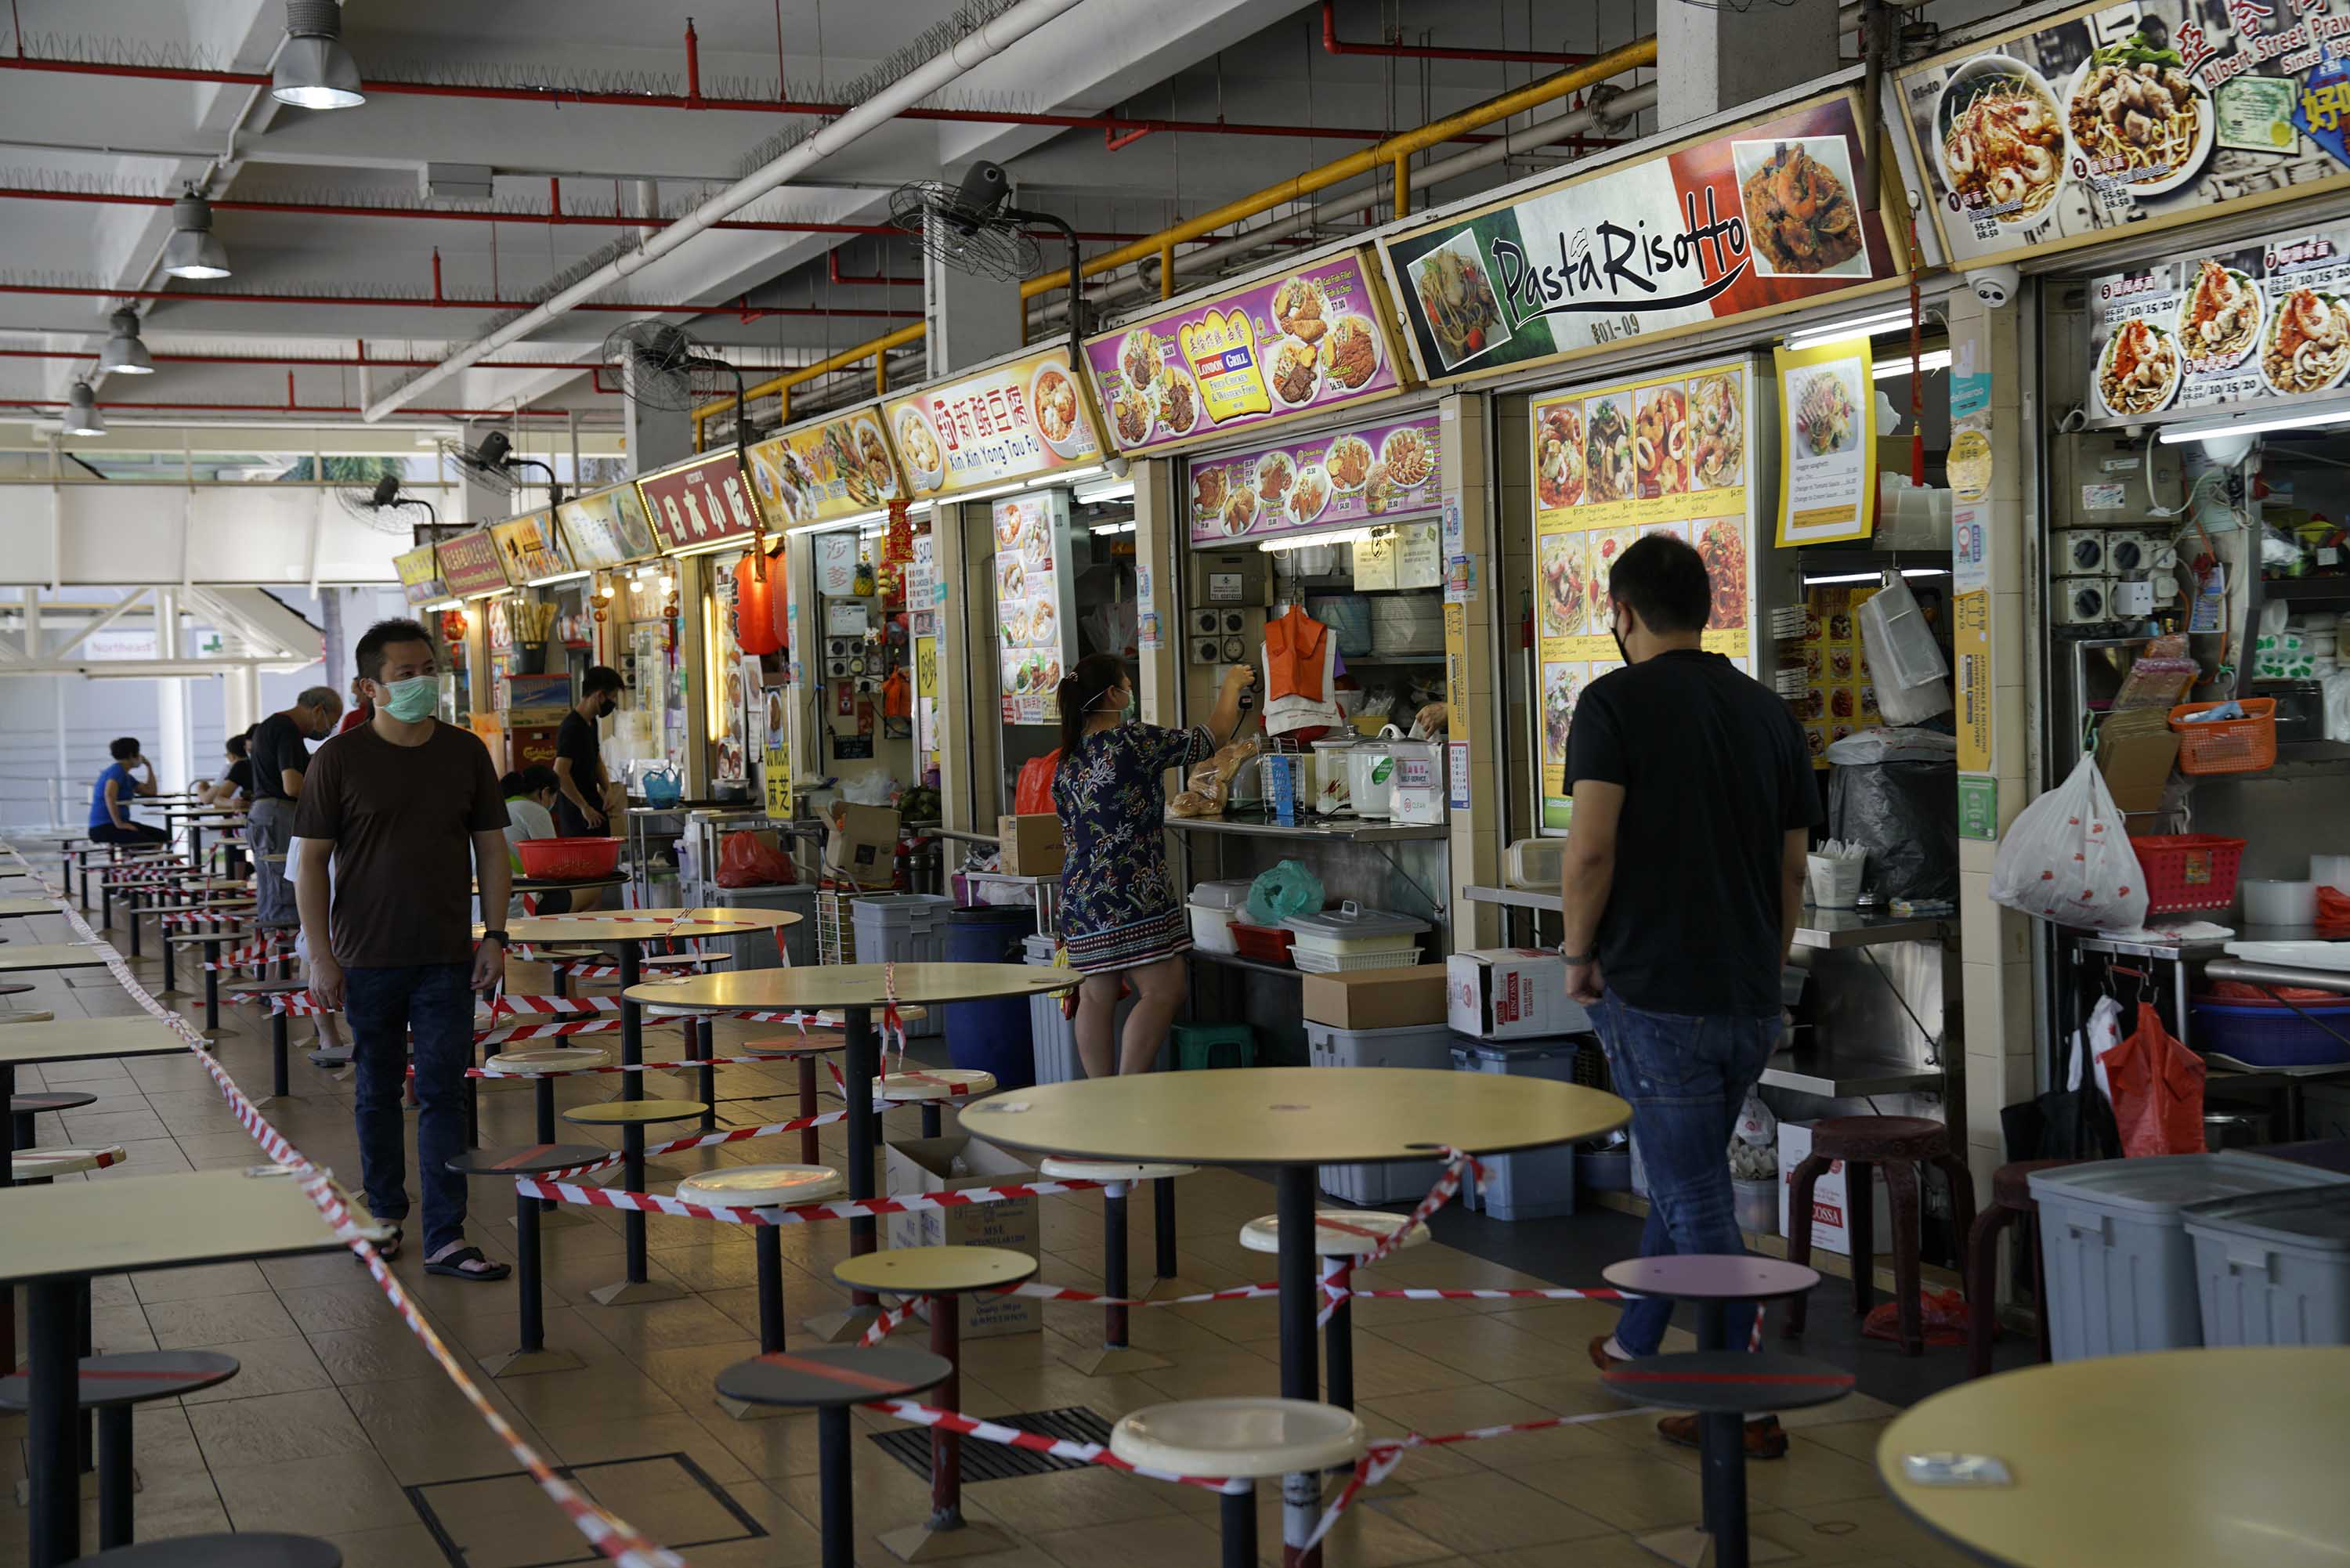 The seating area of a food court is seen taped off during a partial lockdown restrictions in Singapore on April 20.